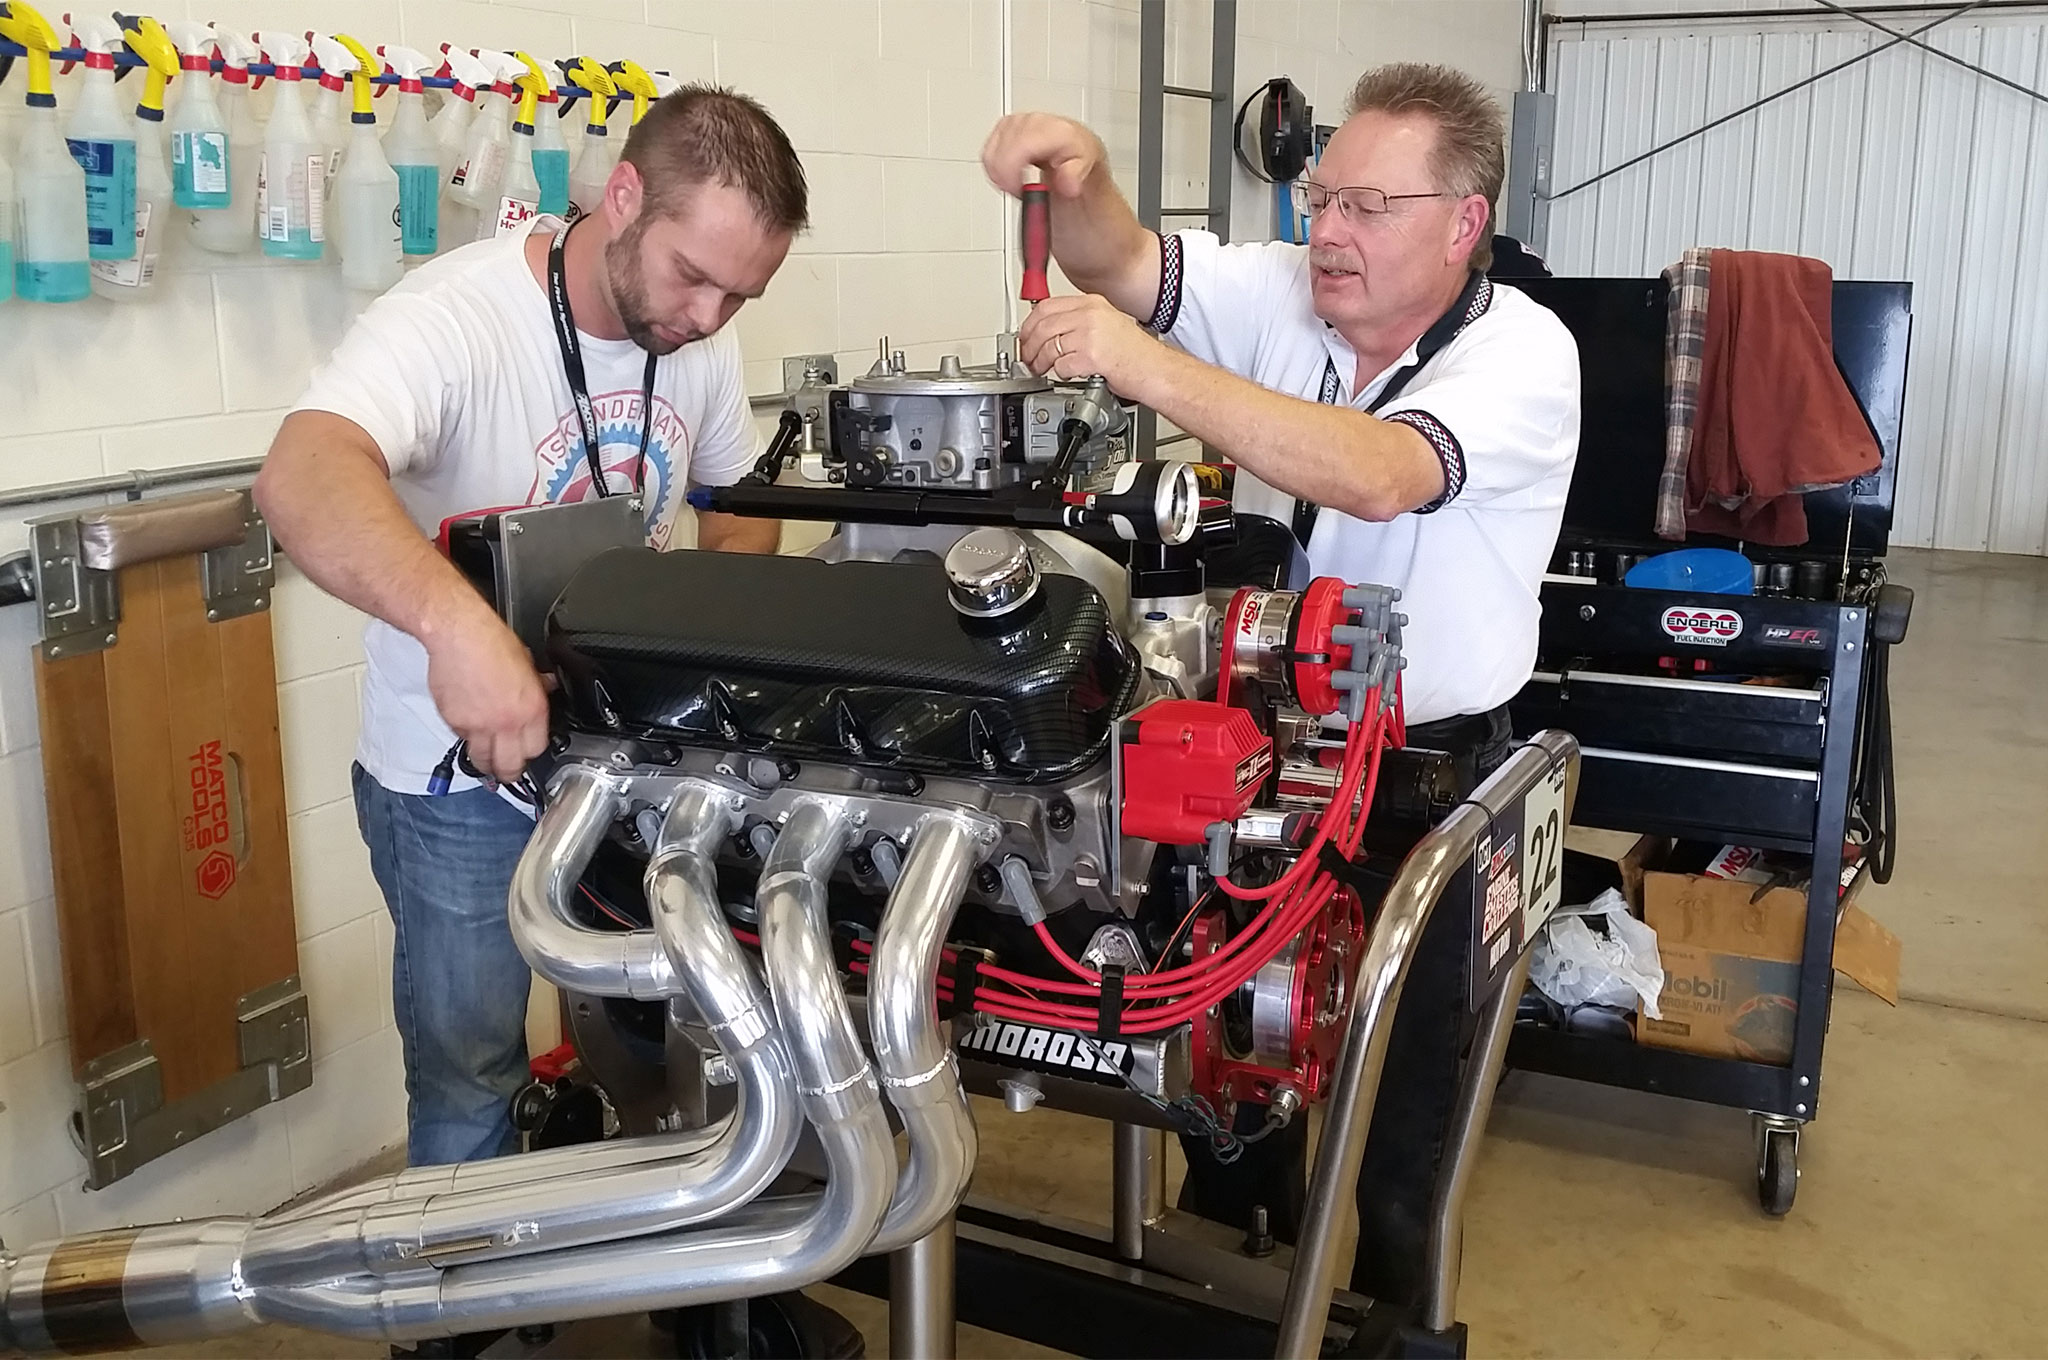 The Roycroft Engines crew readies their 566ci big-block Chevy for tomorrow's Big-Block Shootout. Commonly available off-the-shelf parts, a competition range between 3,000–7,000 rpm, and scoring based on average torque and power keep these engines realistic.